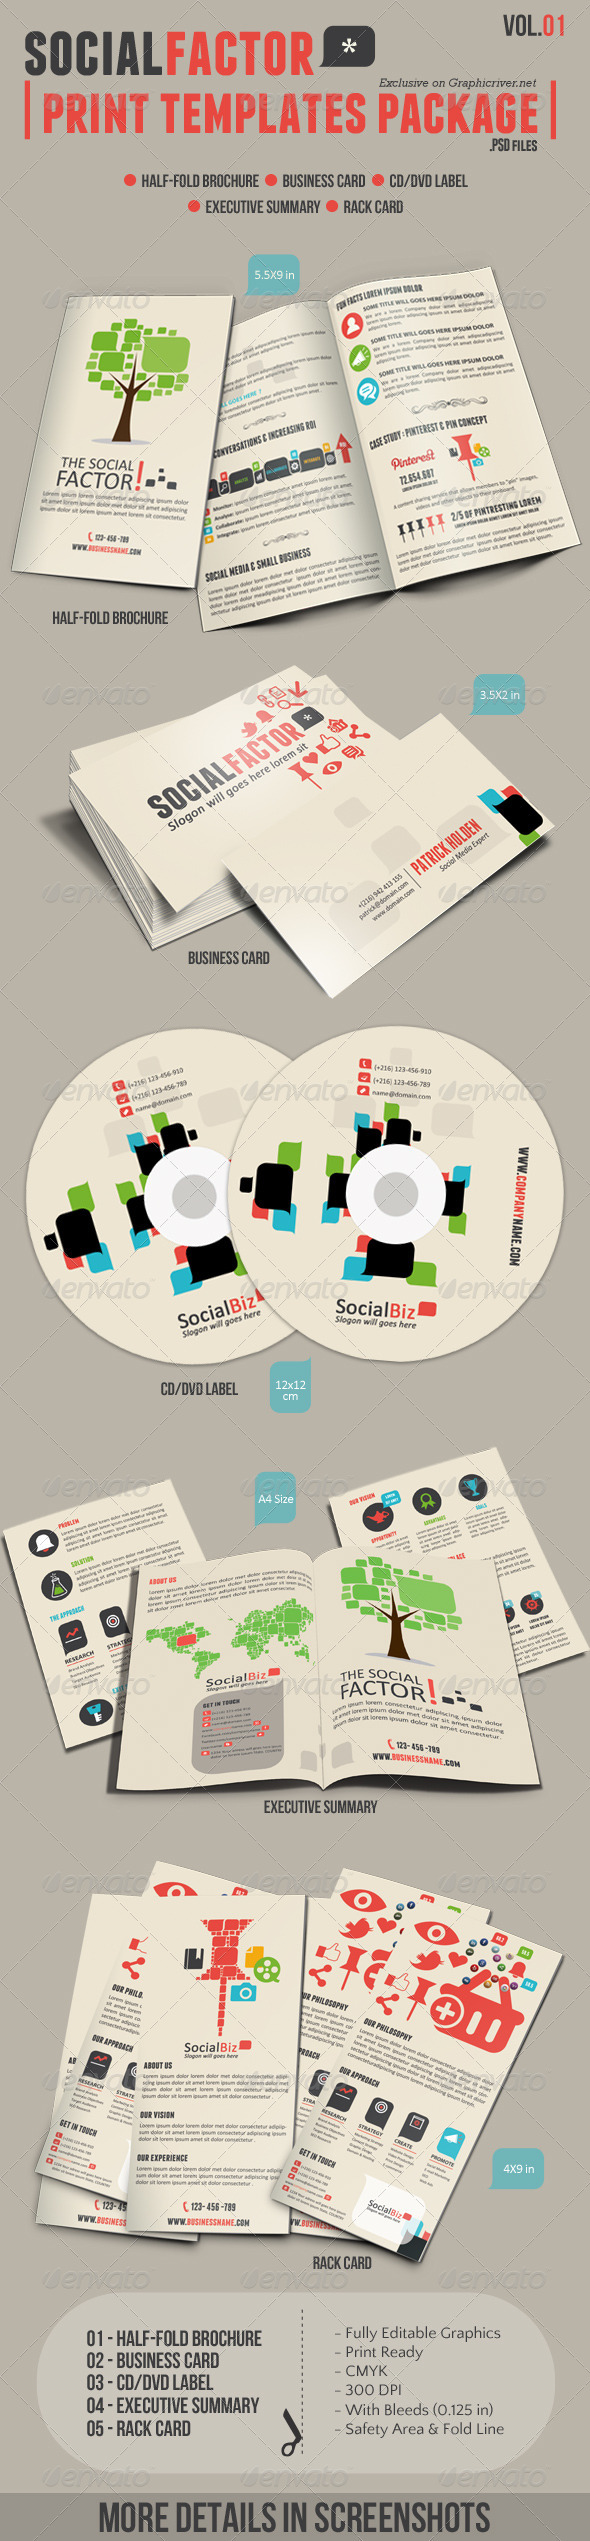 SocialFactor Print Templates Package Vol.01 - Stationery Print Templates